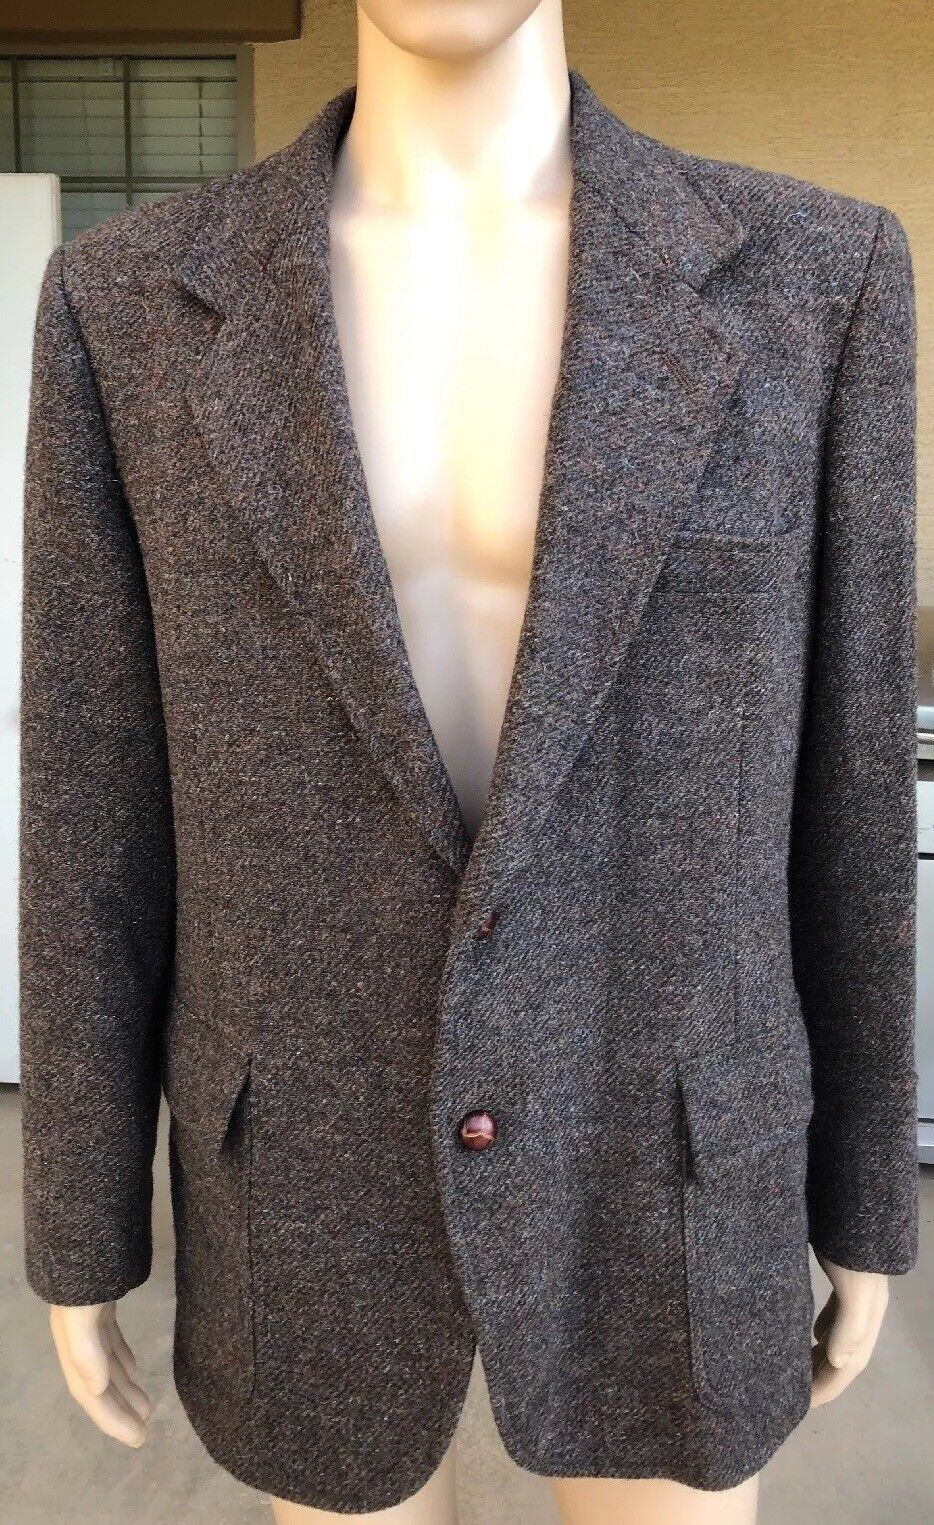 Vintage Pendleton Wool Blazer Elbow Patches Size 44 Sport Coat USA Made